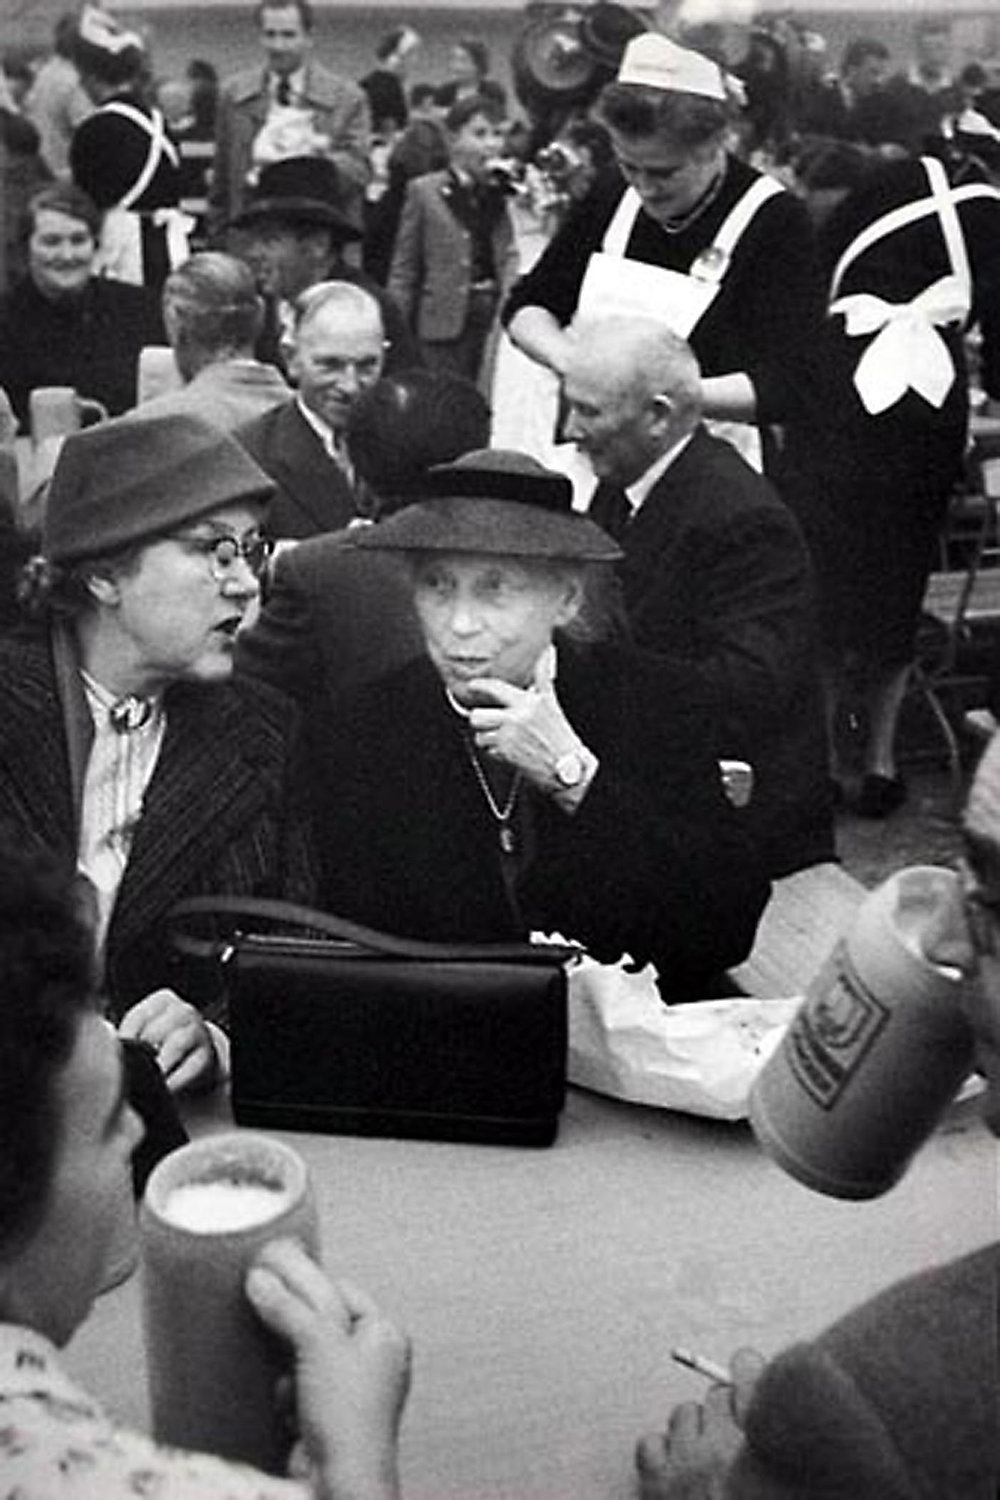 HANNON_two_women_at_octoberfest_(munich)_1957_11x14_high.jpg